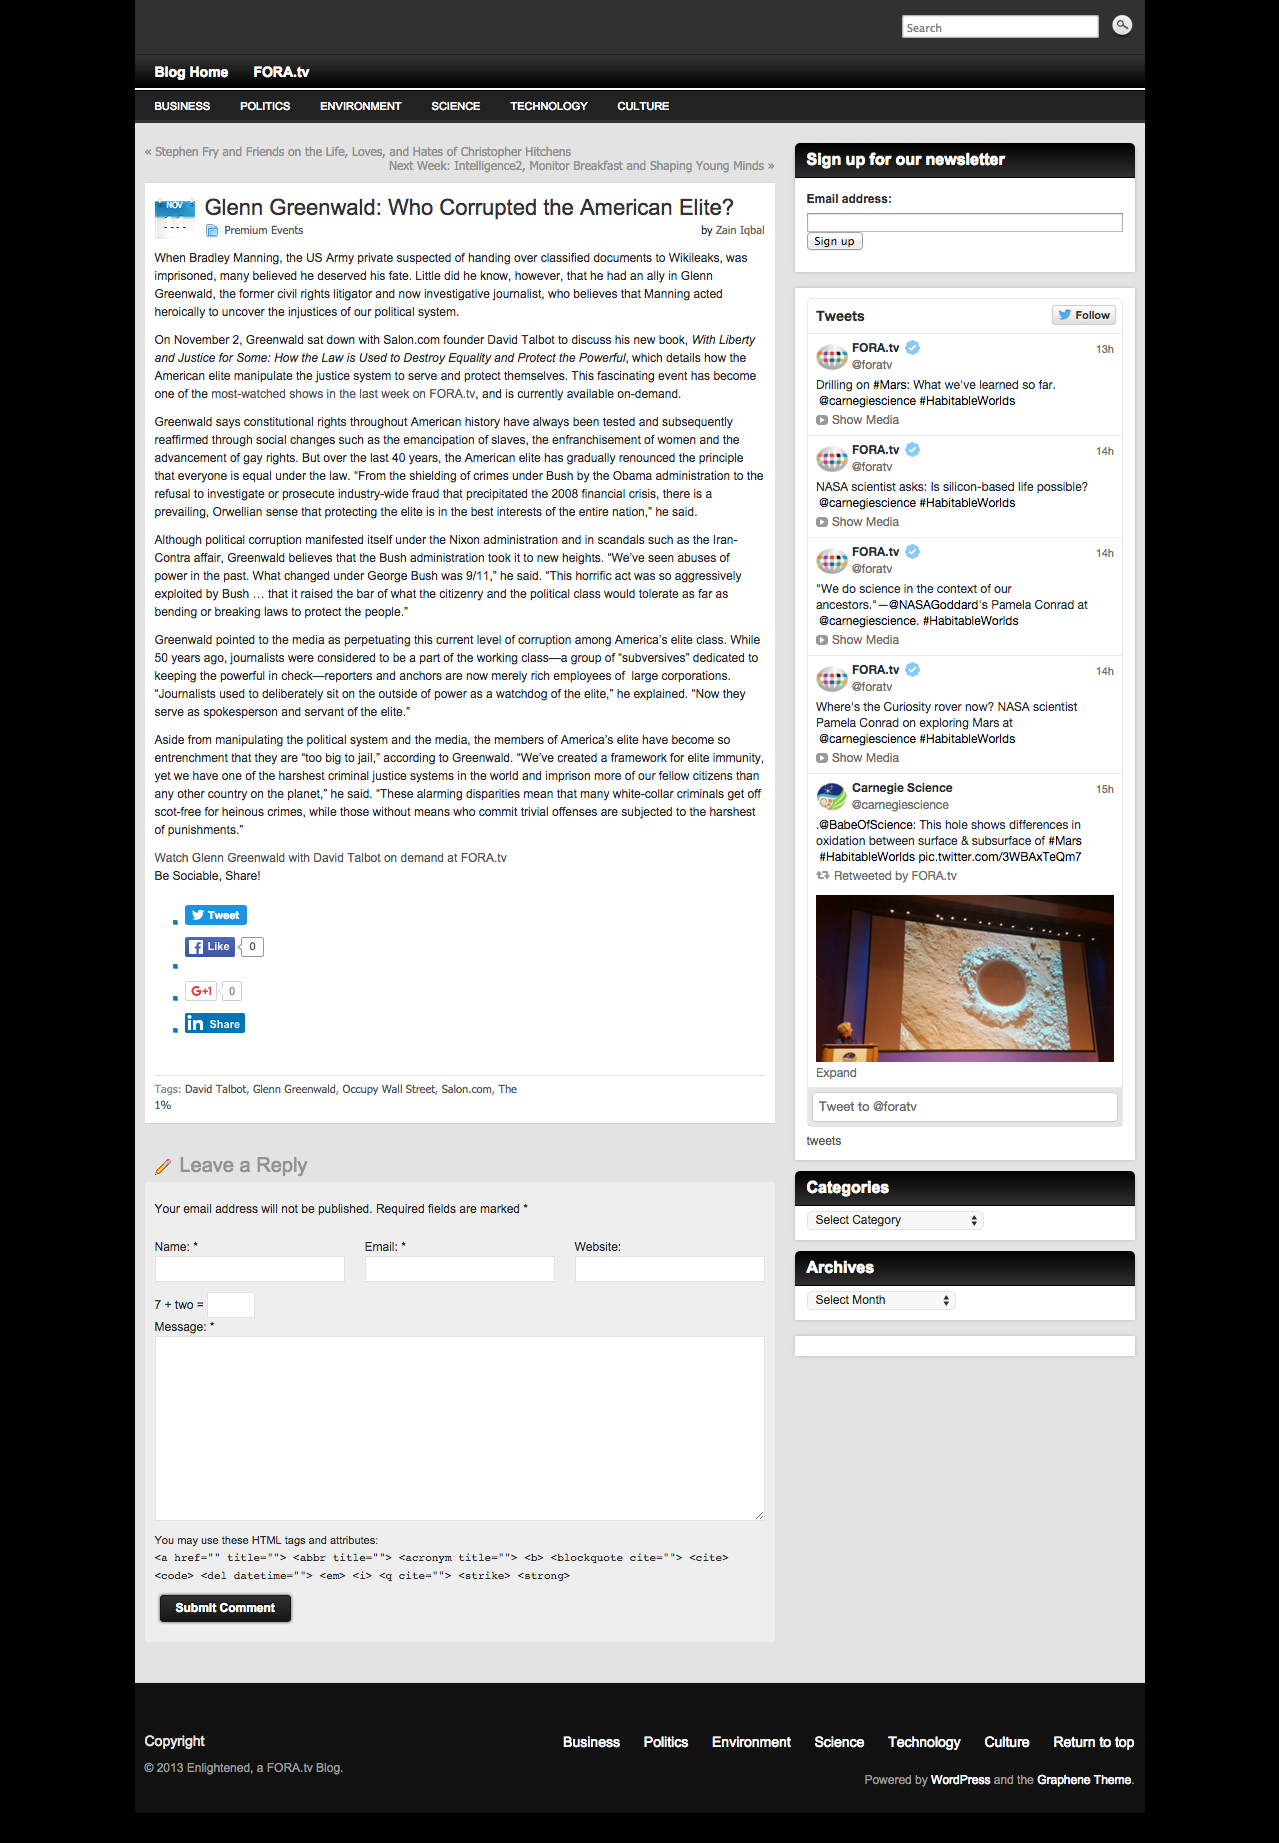 screencapture-enarchive-fora-tv-2011-11-glenn-greenwald-who-corrupted-the-american-elite.png